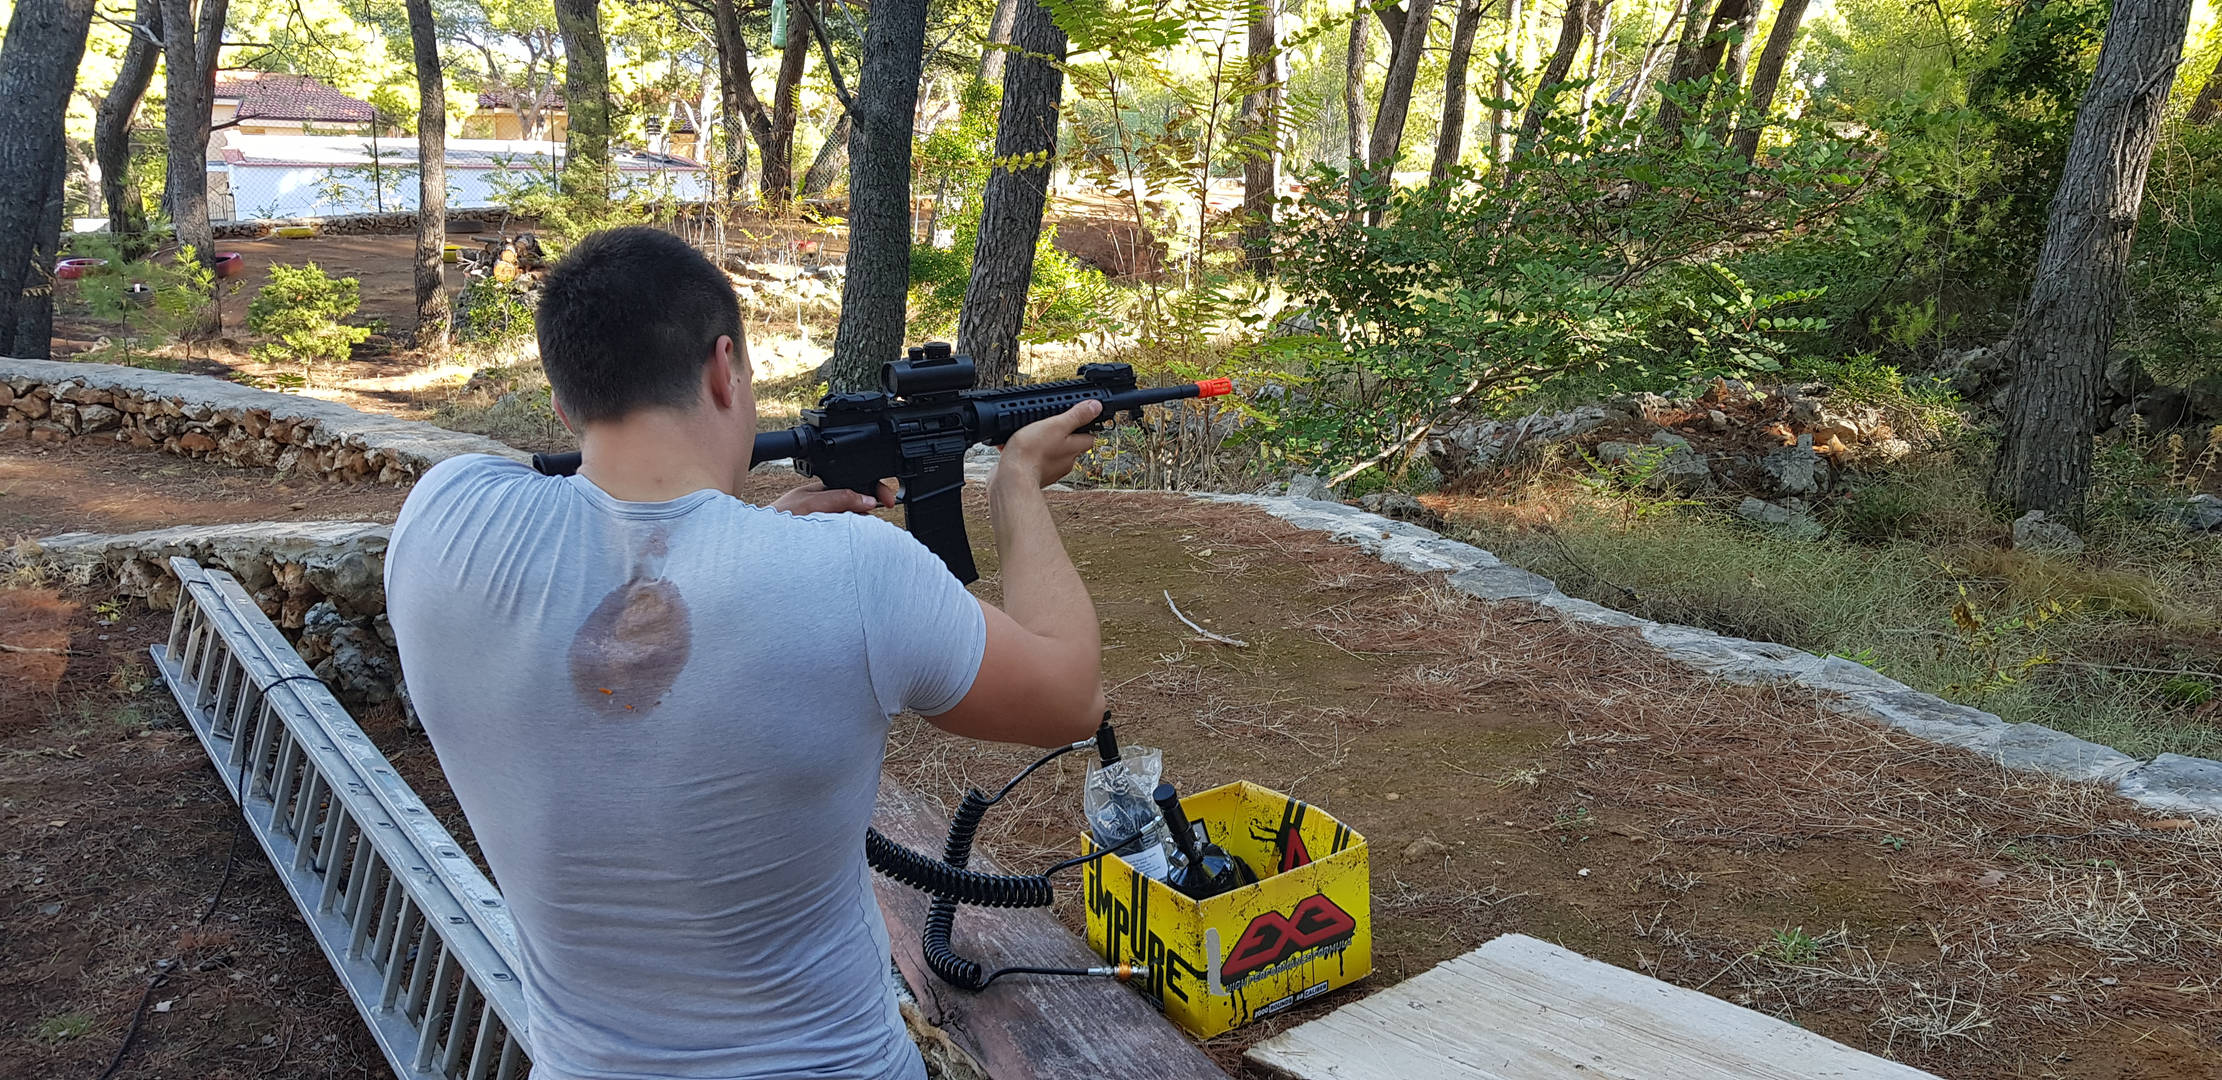 First testing of airsoft replica M4 Carabine